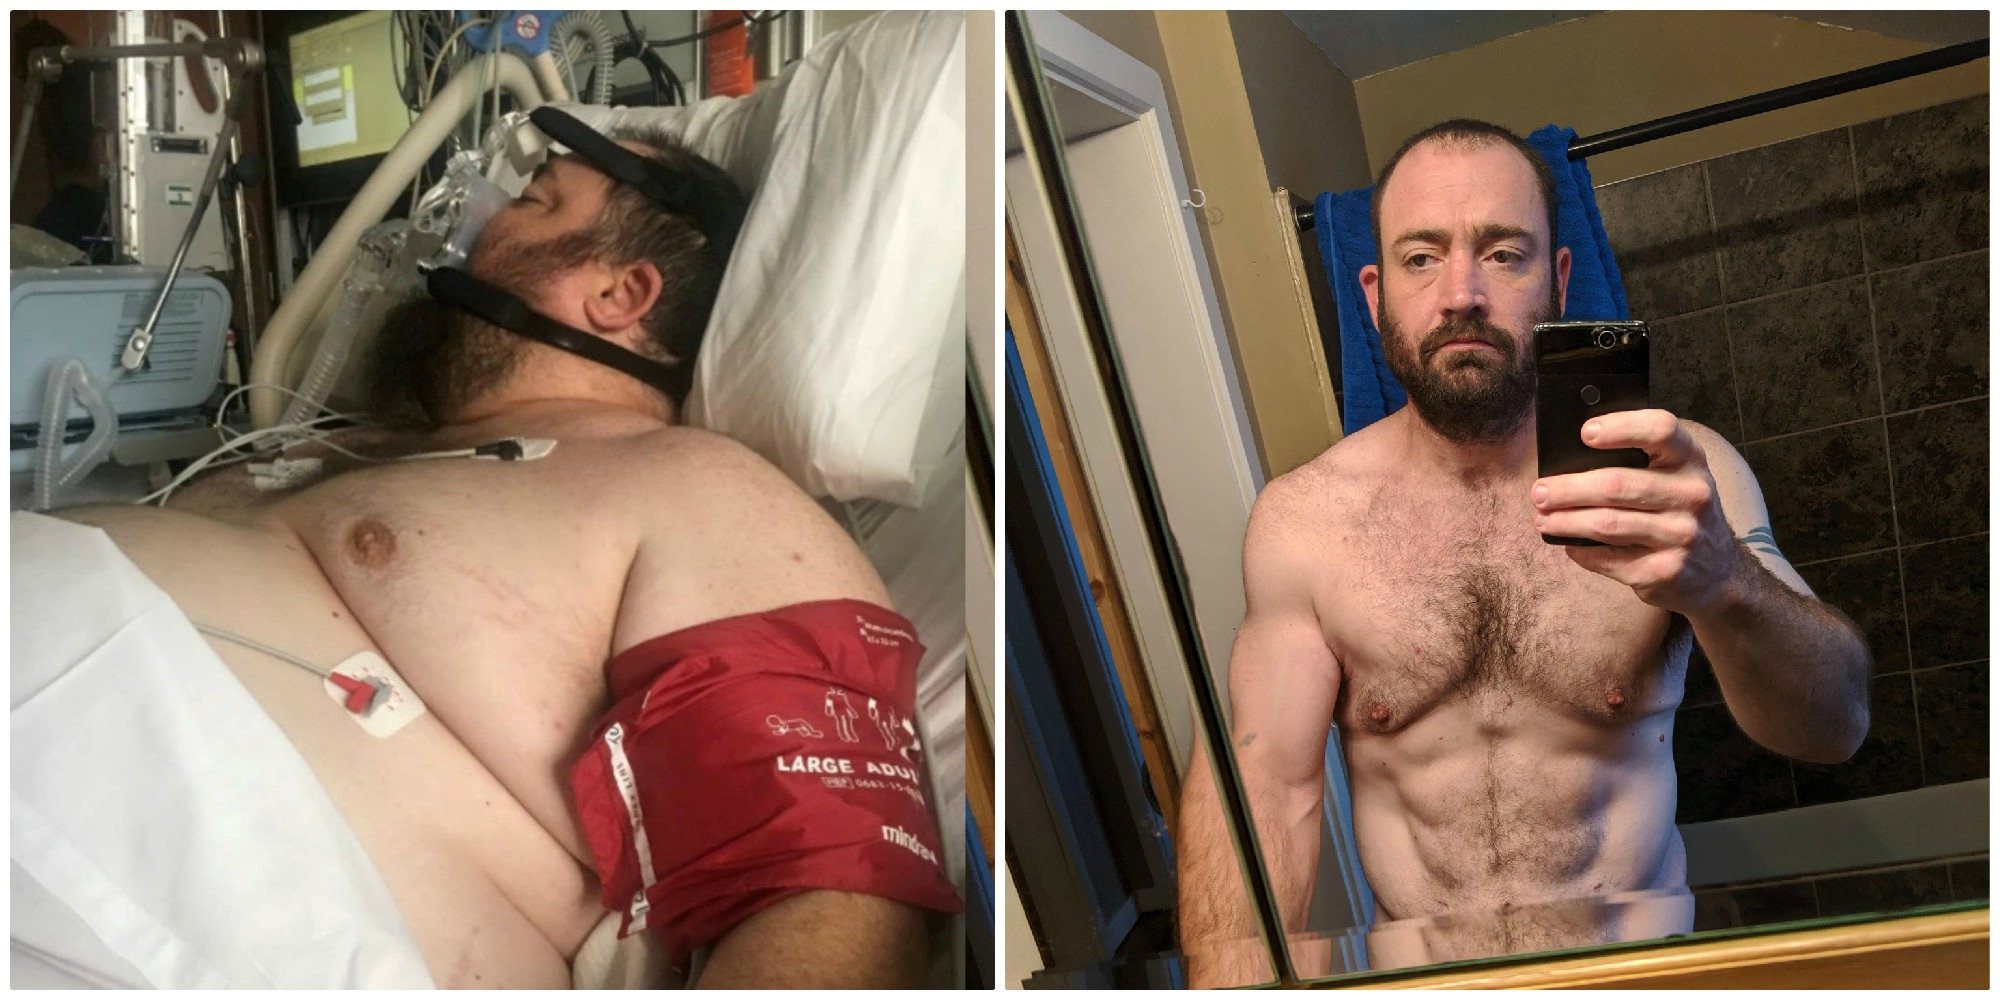 Iowa man sheds half his body weight after invasive spinal surgery, says he once ate 'with no constraint'